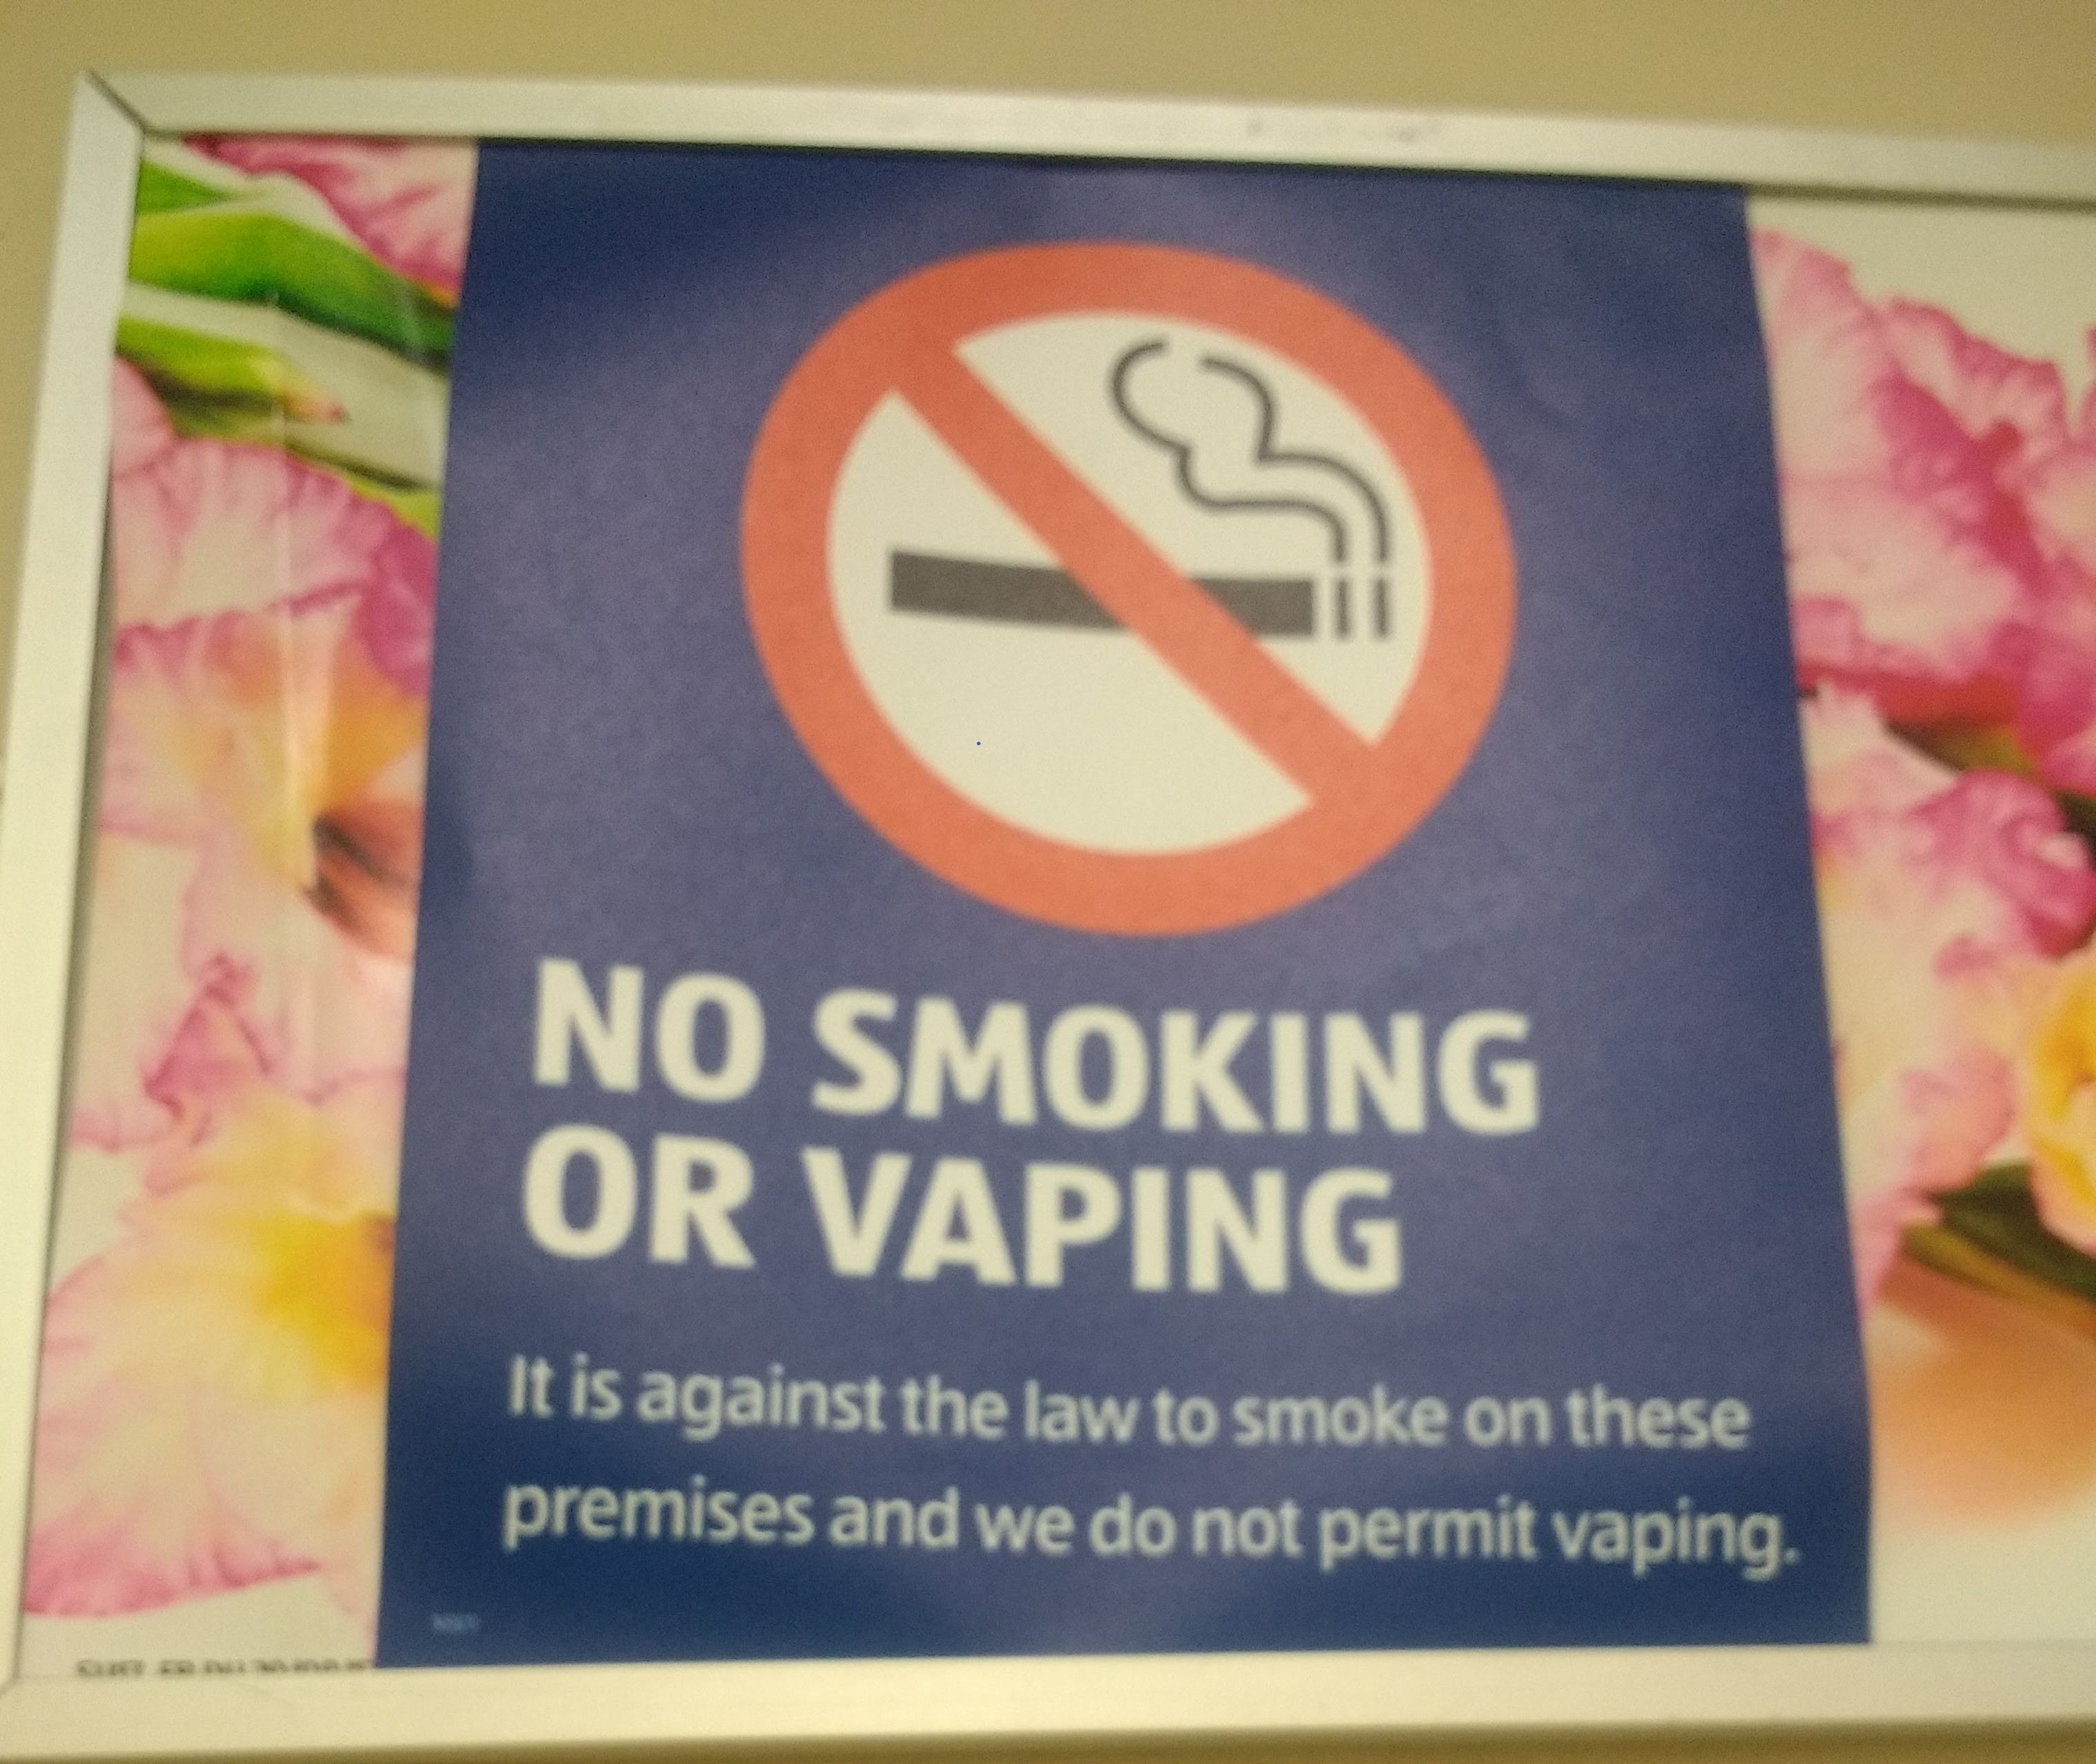 Aldi no smoking no vaping sign